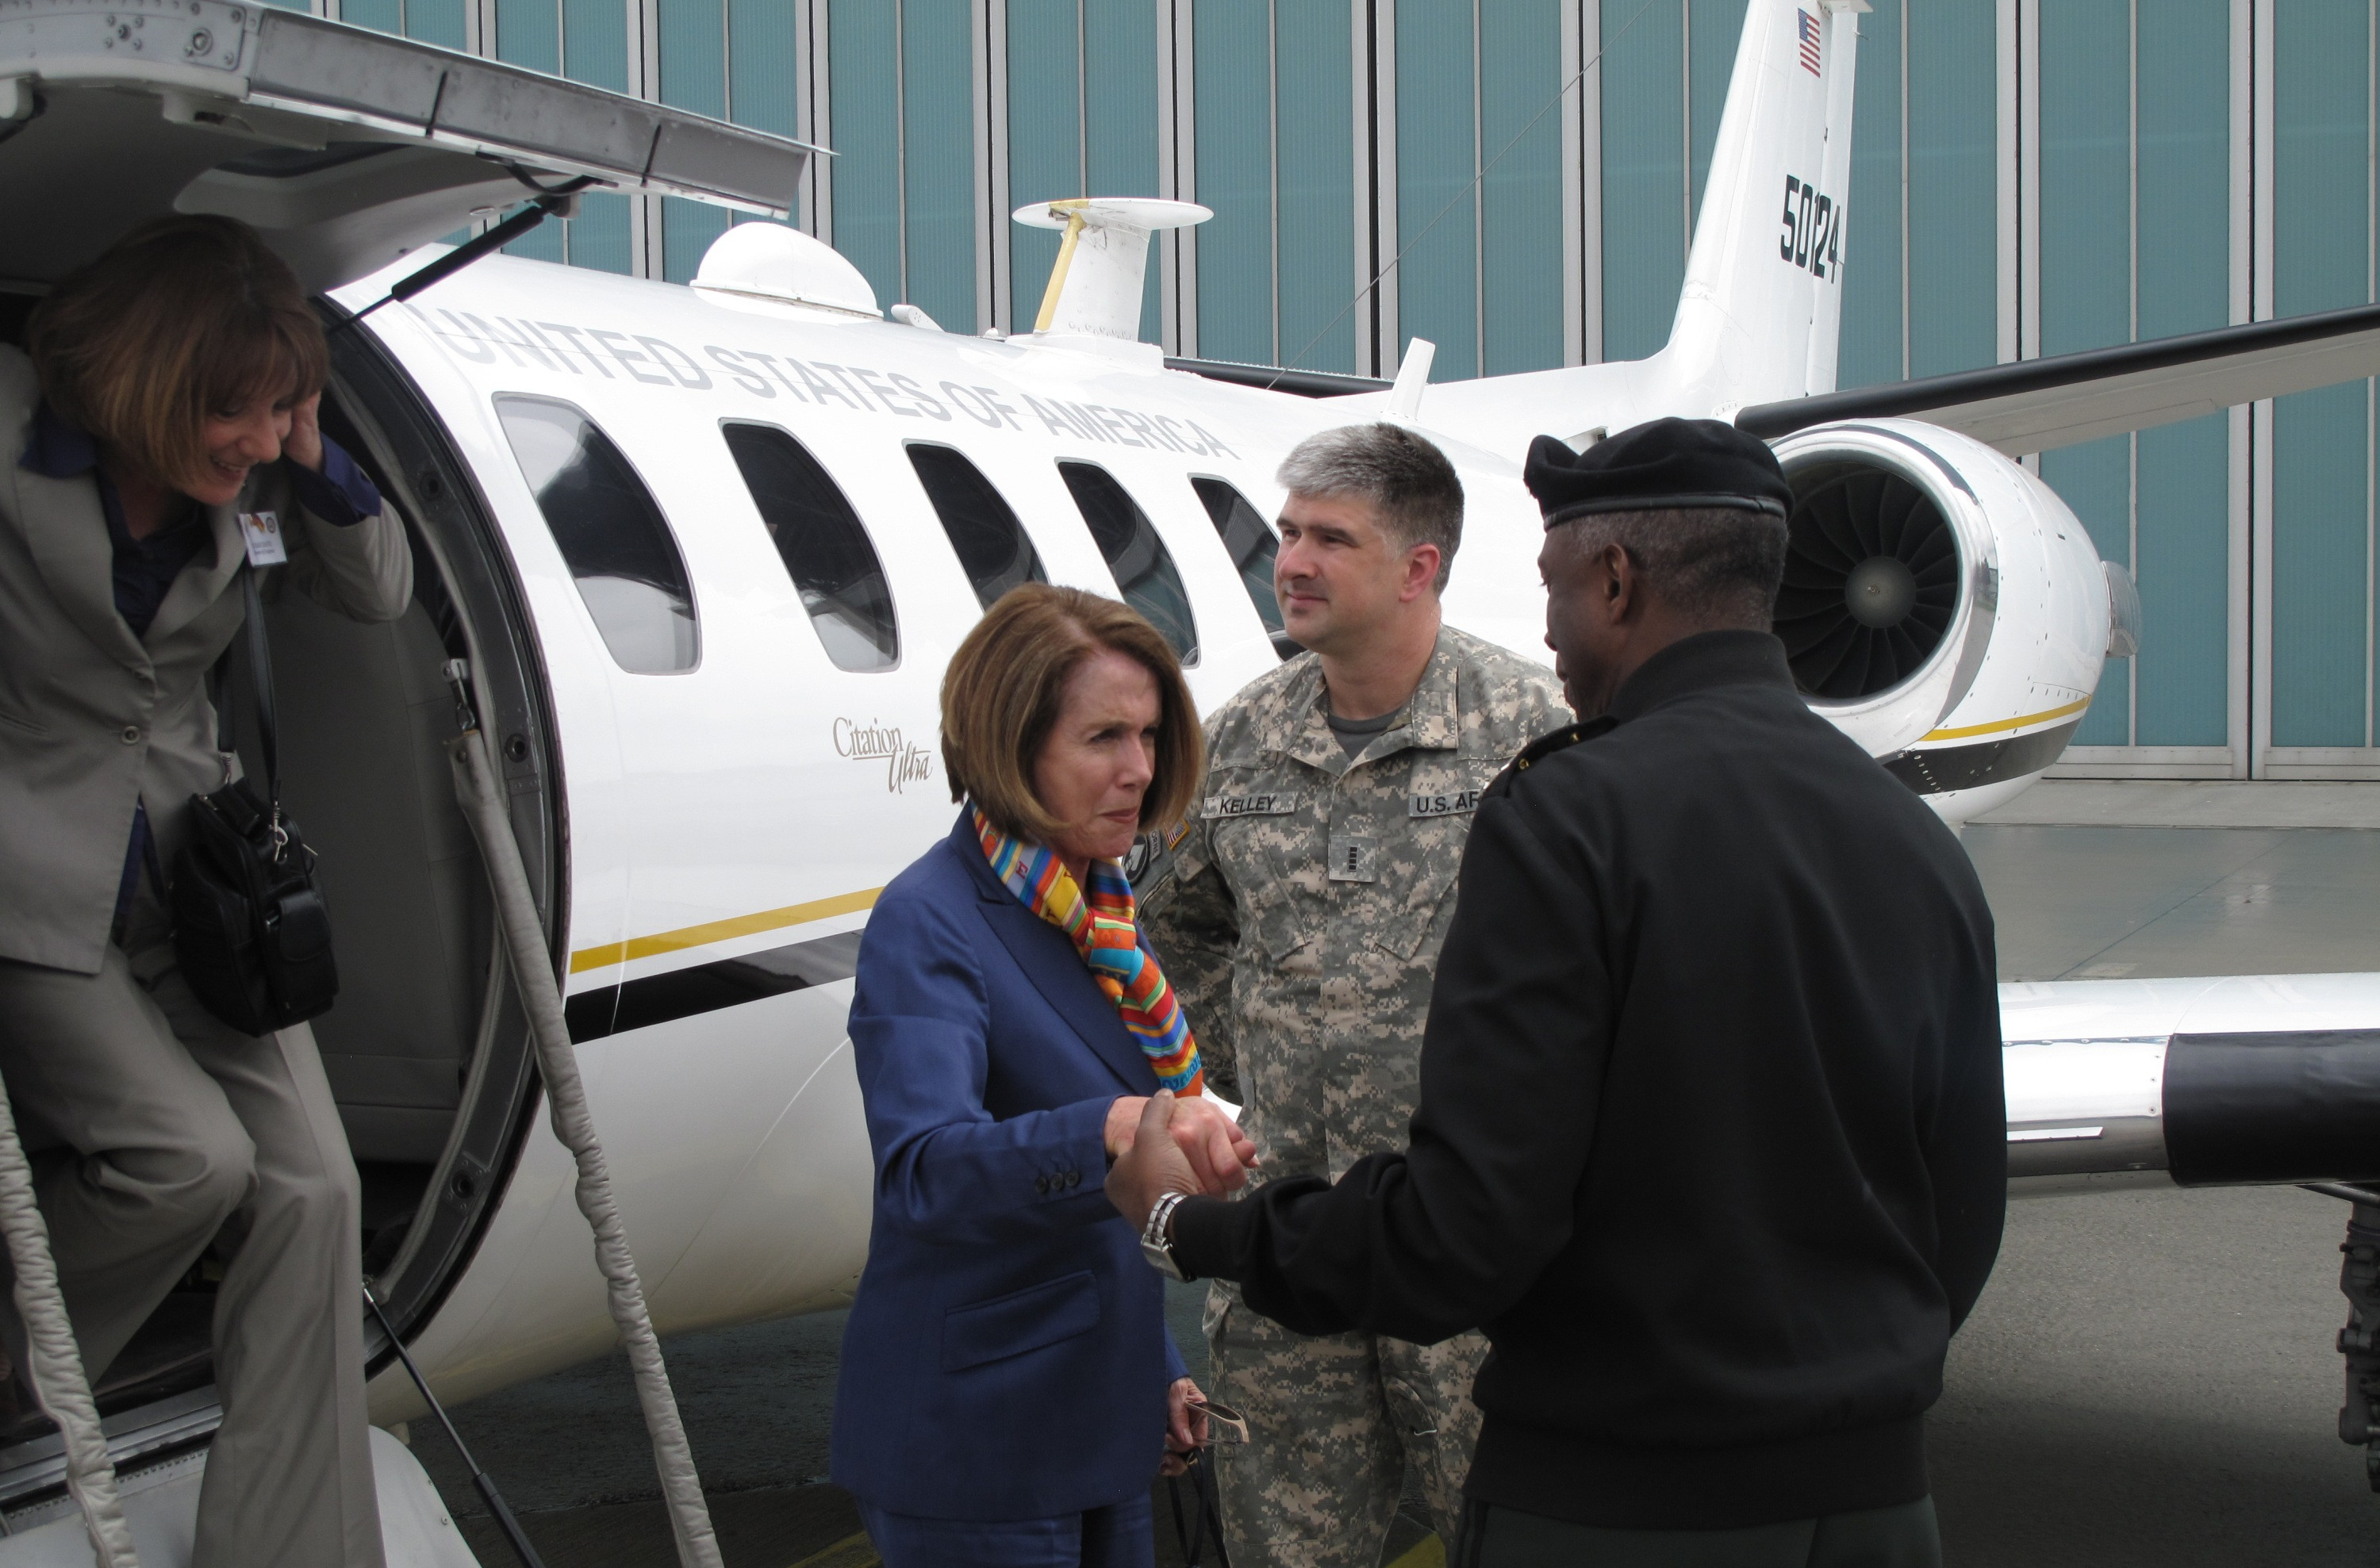 Speaker of the House Nancy Pelosi exists a U.S. military Cessna UC-35 aircraft during a visit to U.S. Africa Command in Germany in 2010.